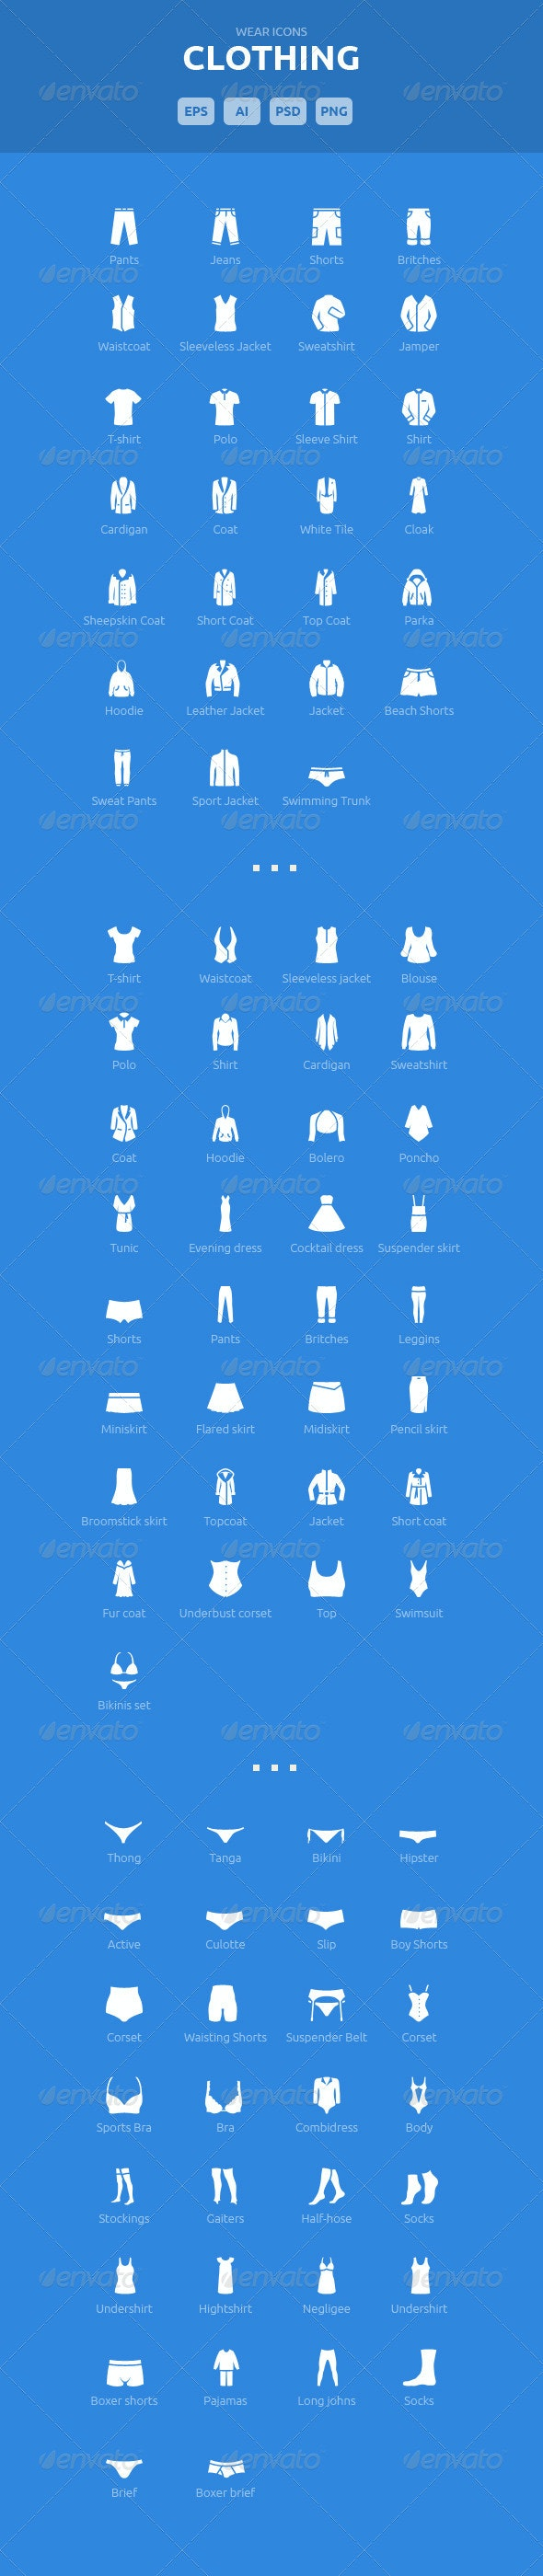 Wear Icons - Clothing Vector Pack - Icons